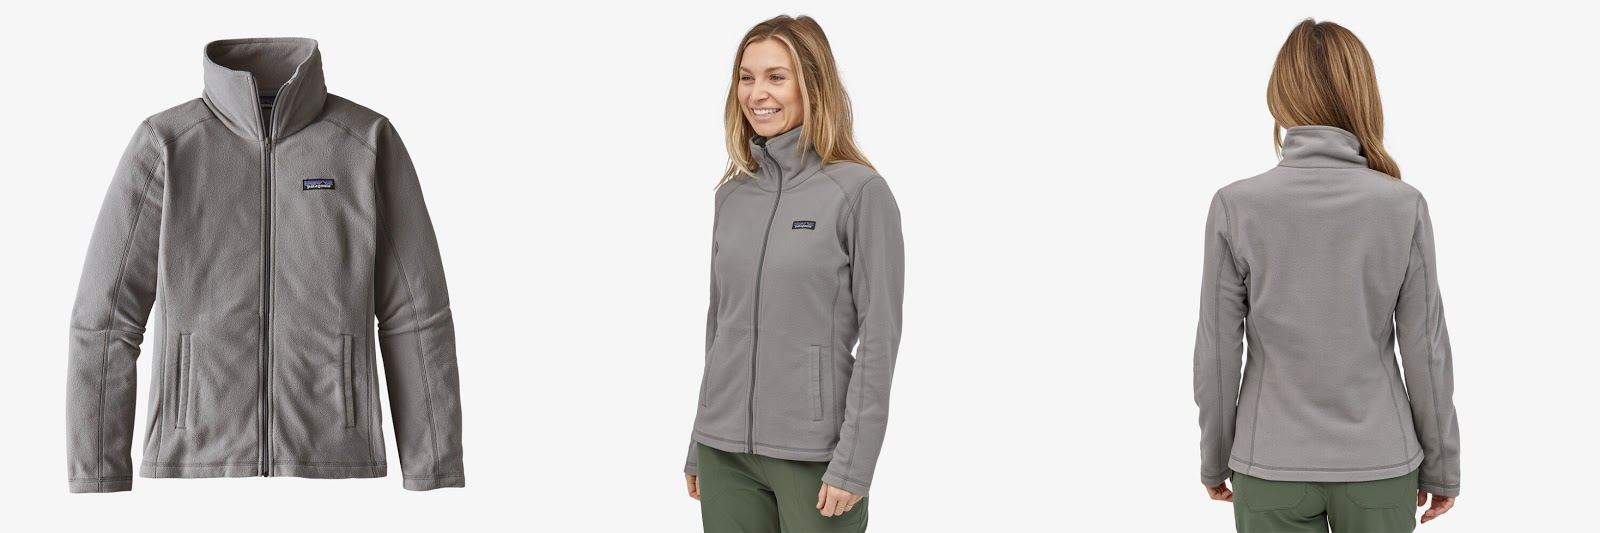 Patagonia Women's Micro D Jacket in Feather Grey